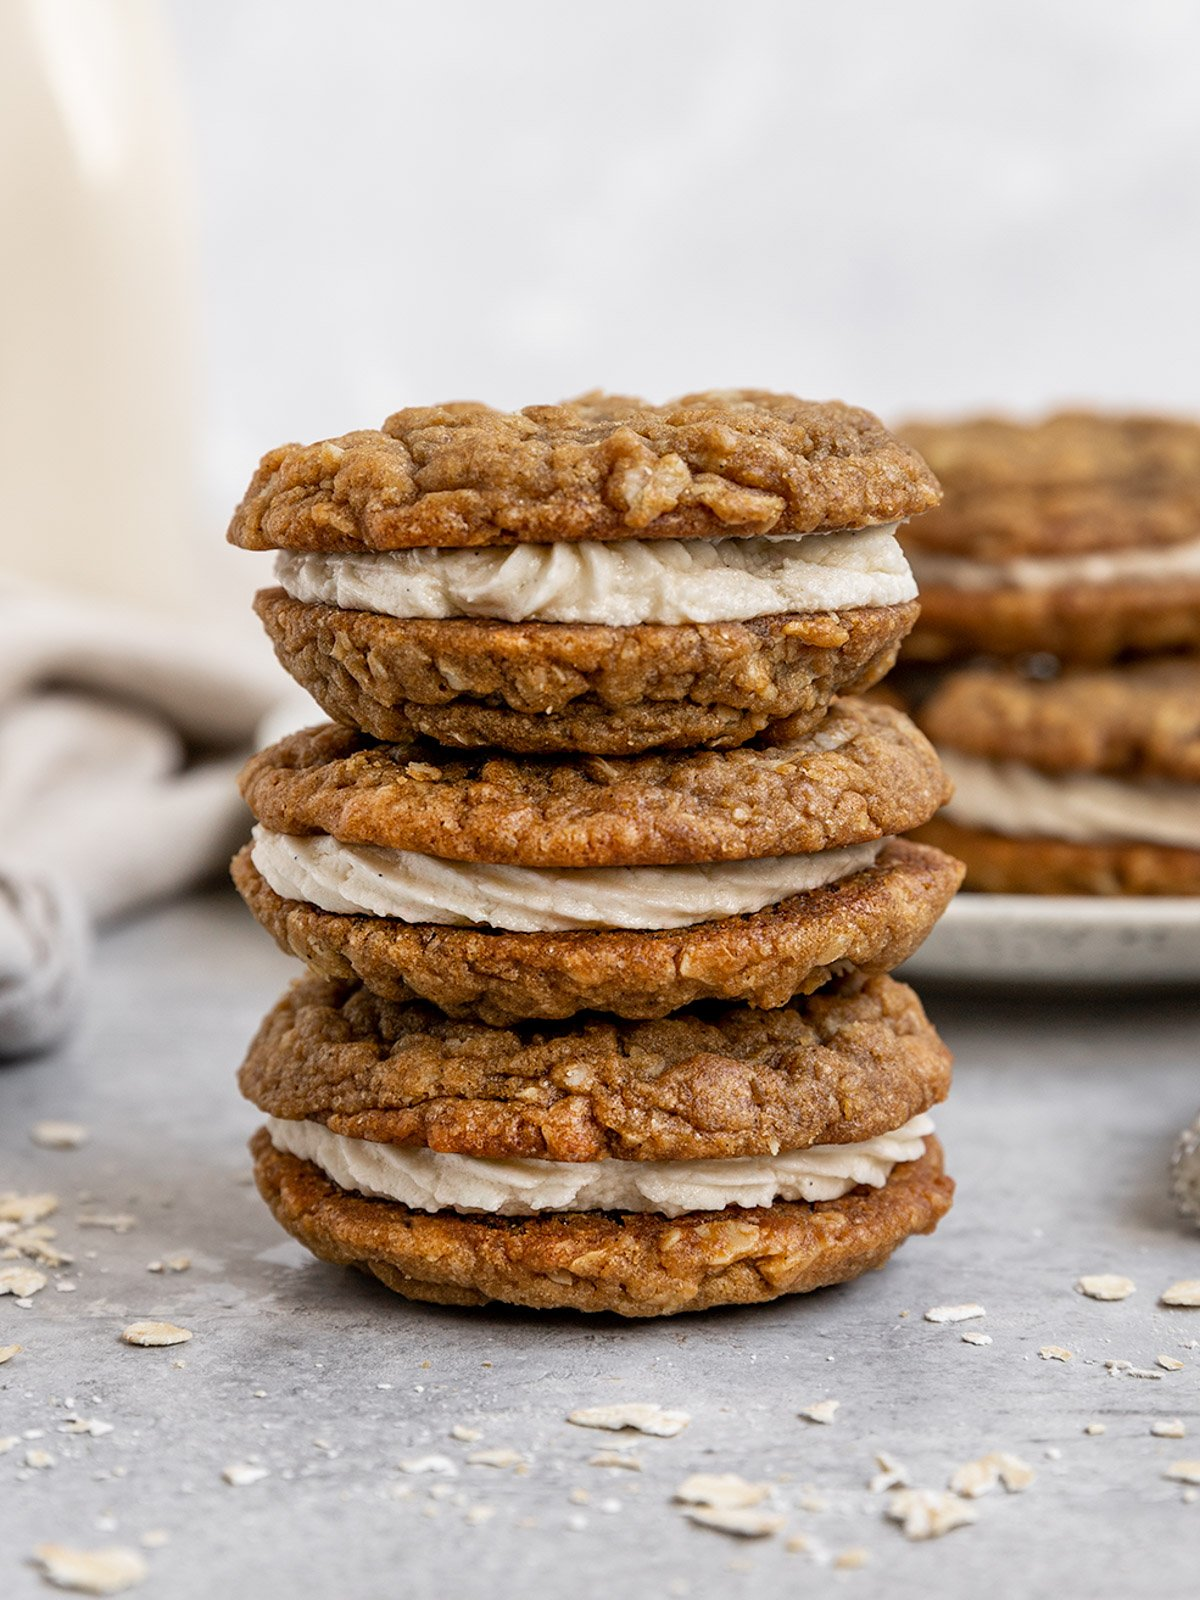 three oatmeal cookies filled with frosting stacked on top of each other beside milk and a plate of more cookies